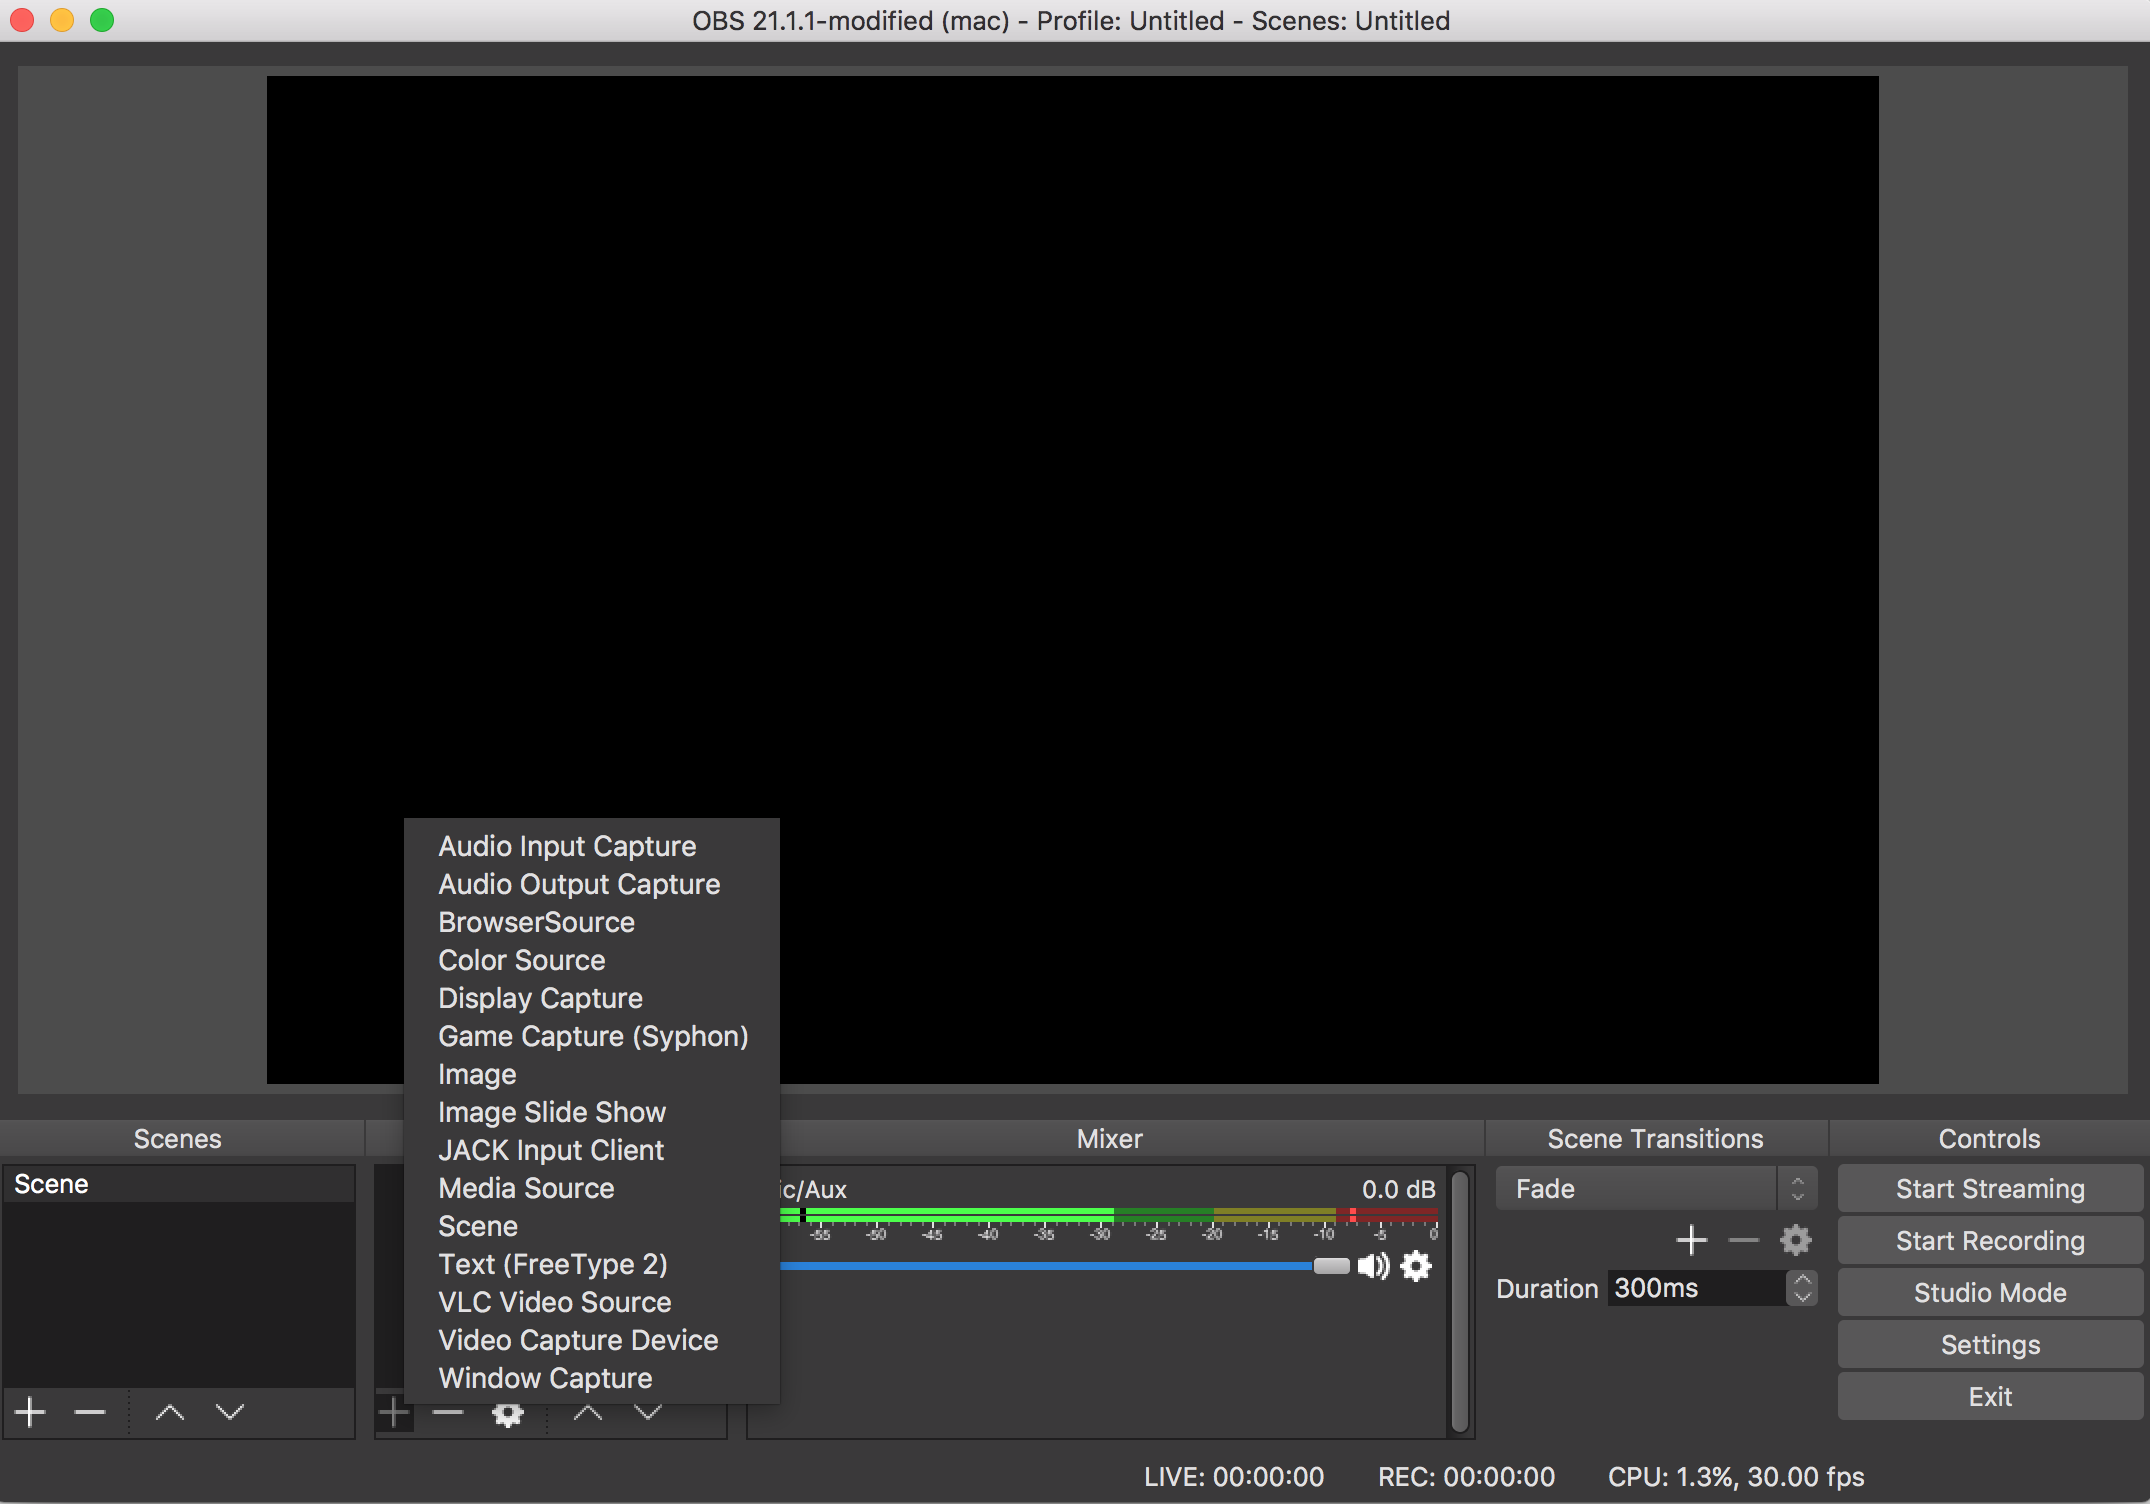 OBS (Open Broadcaster Software) interface